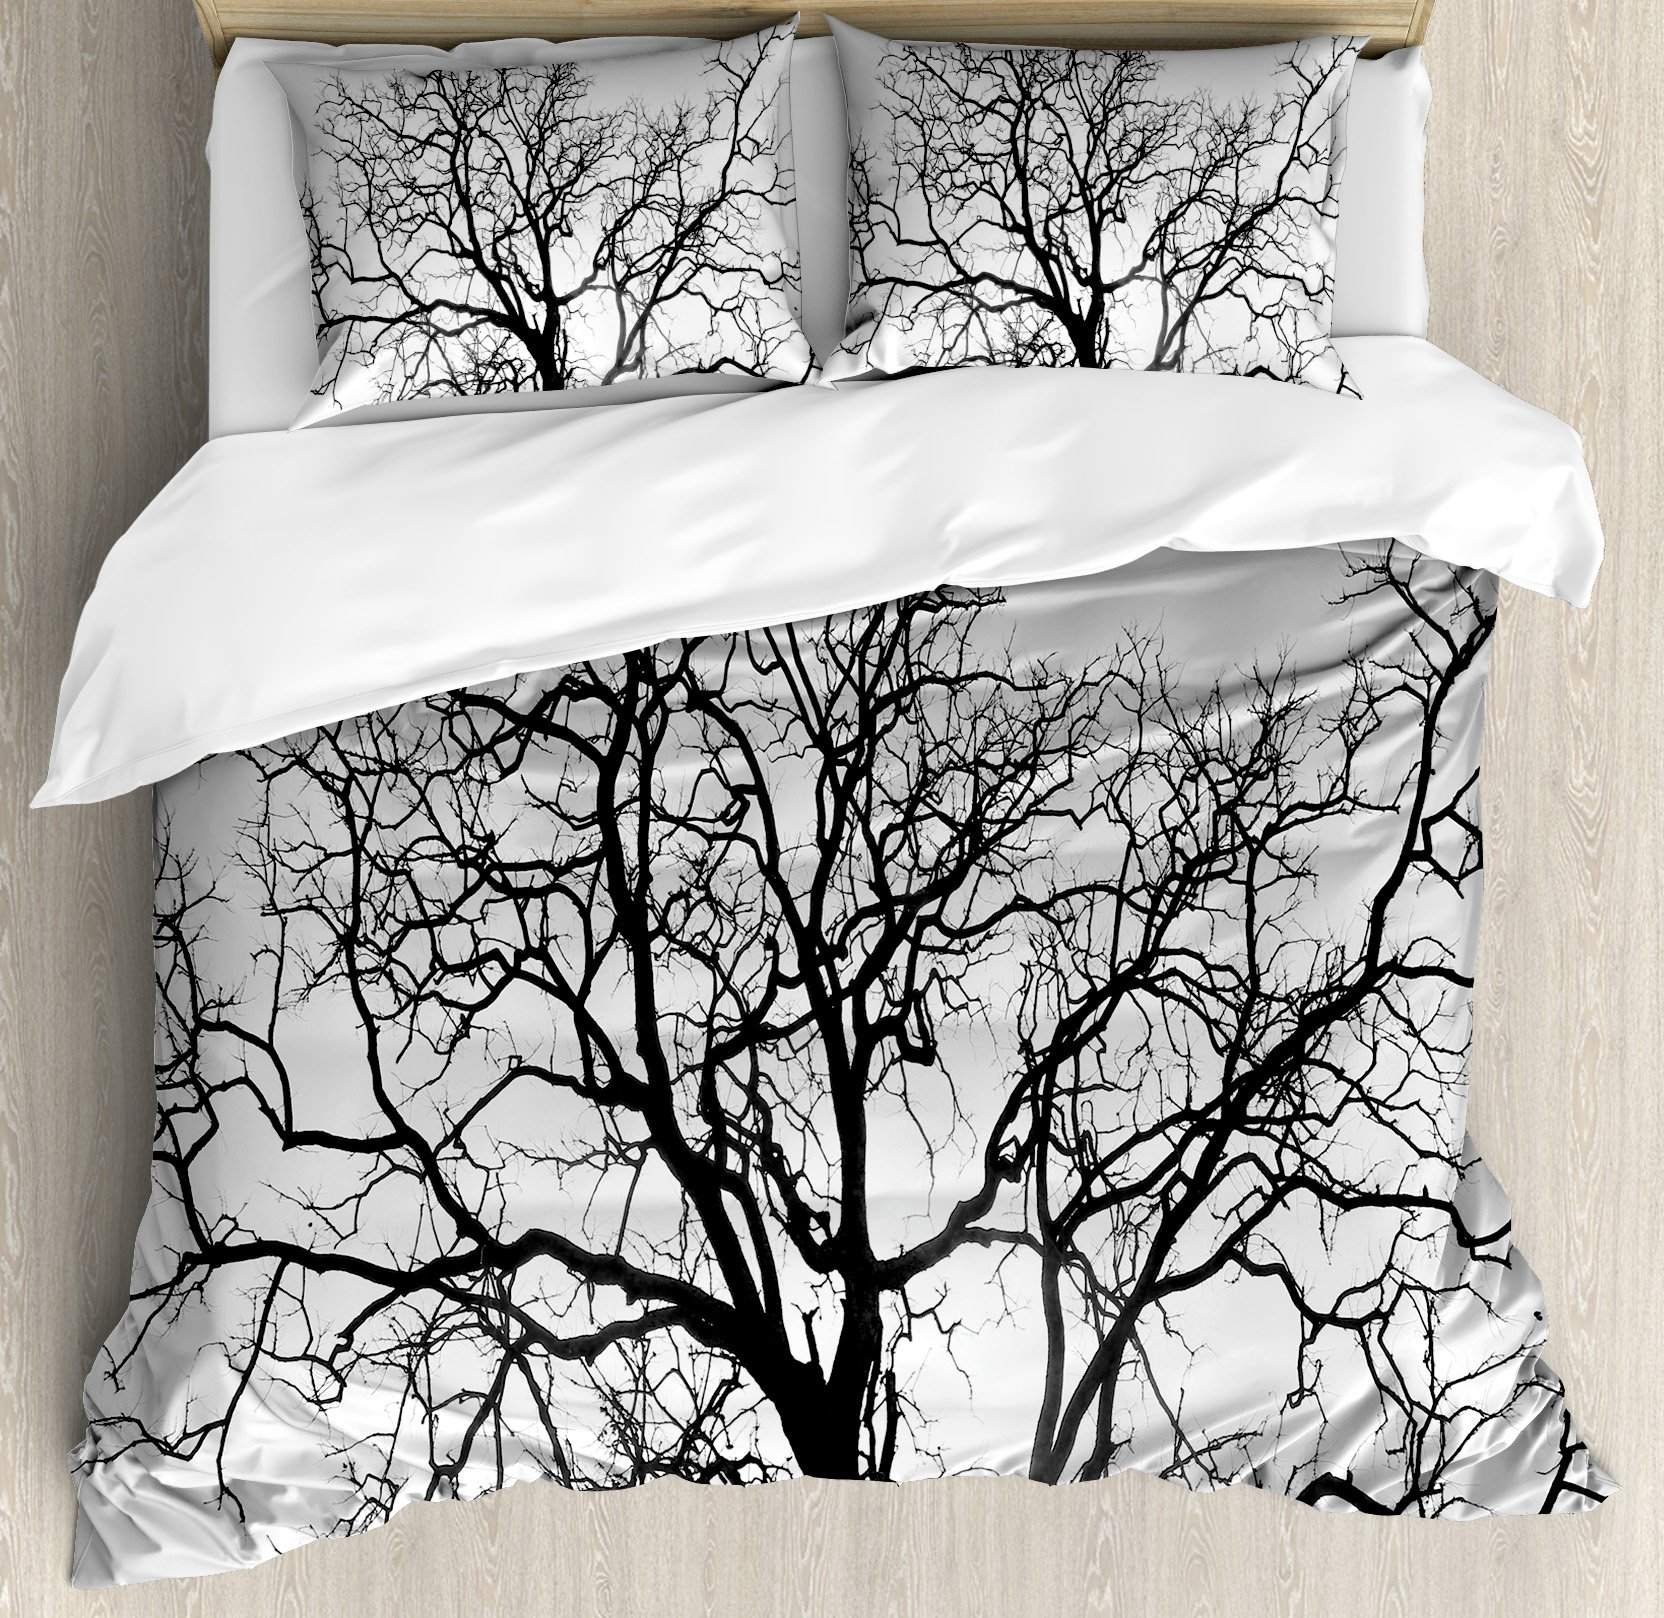 Forest Home Decor Duvet Cover Set by Ambesonne, Dead Old Branches Arms Limbs Sadness Symbol Tree of Life Offshoot Picture, 3 Piece Bedding Set with Pillow Shams, King Size, Grey Black